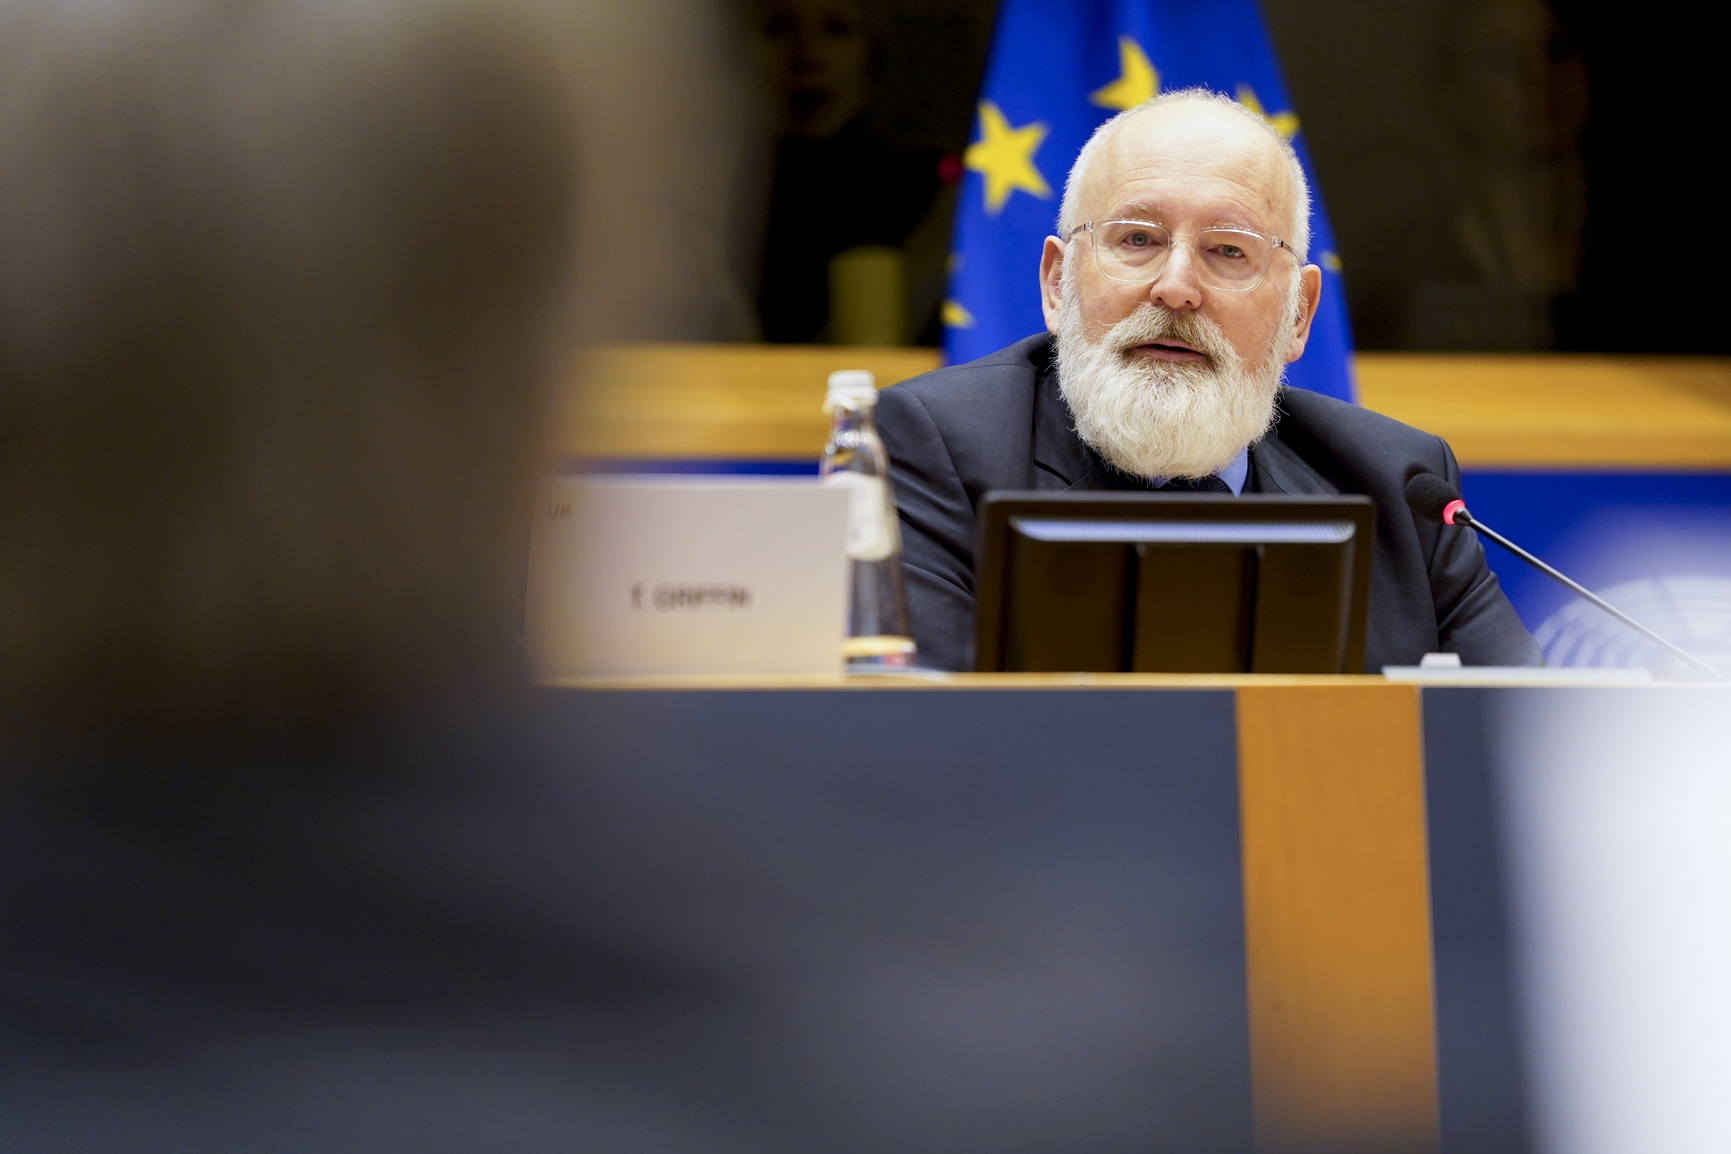 Frans Timmermans, VP of the European Commission